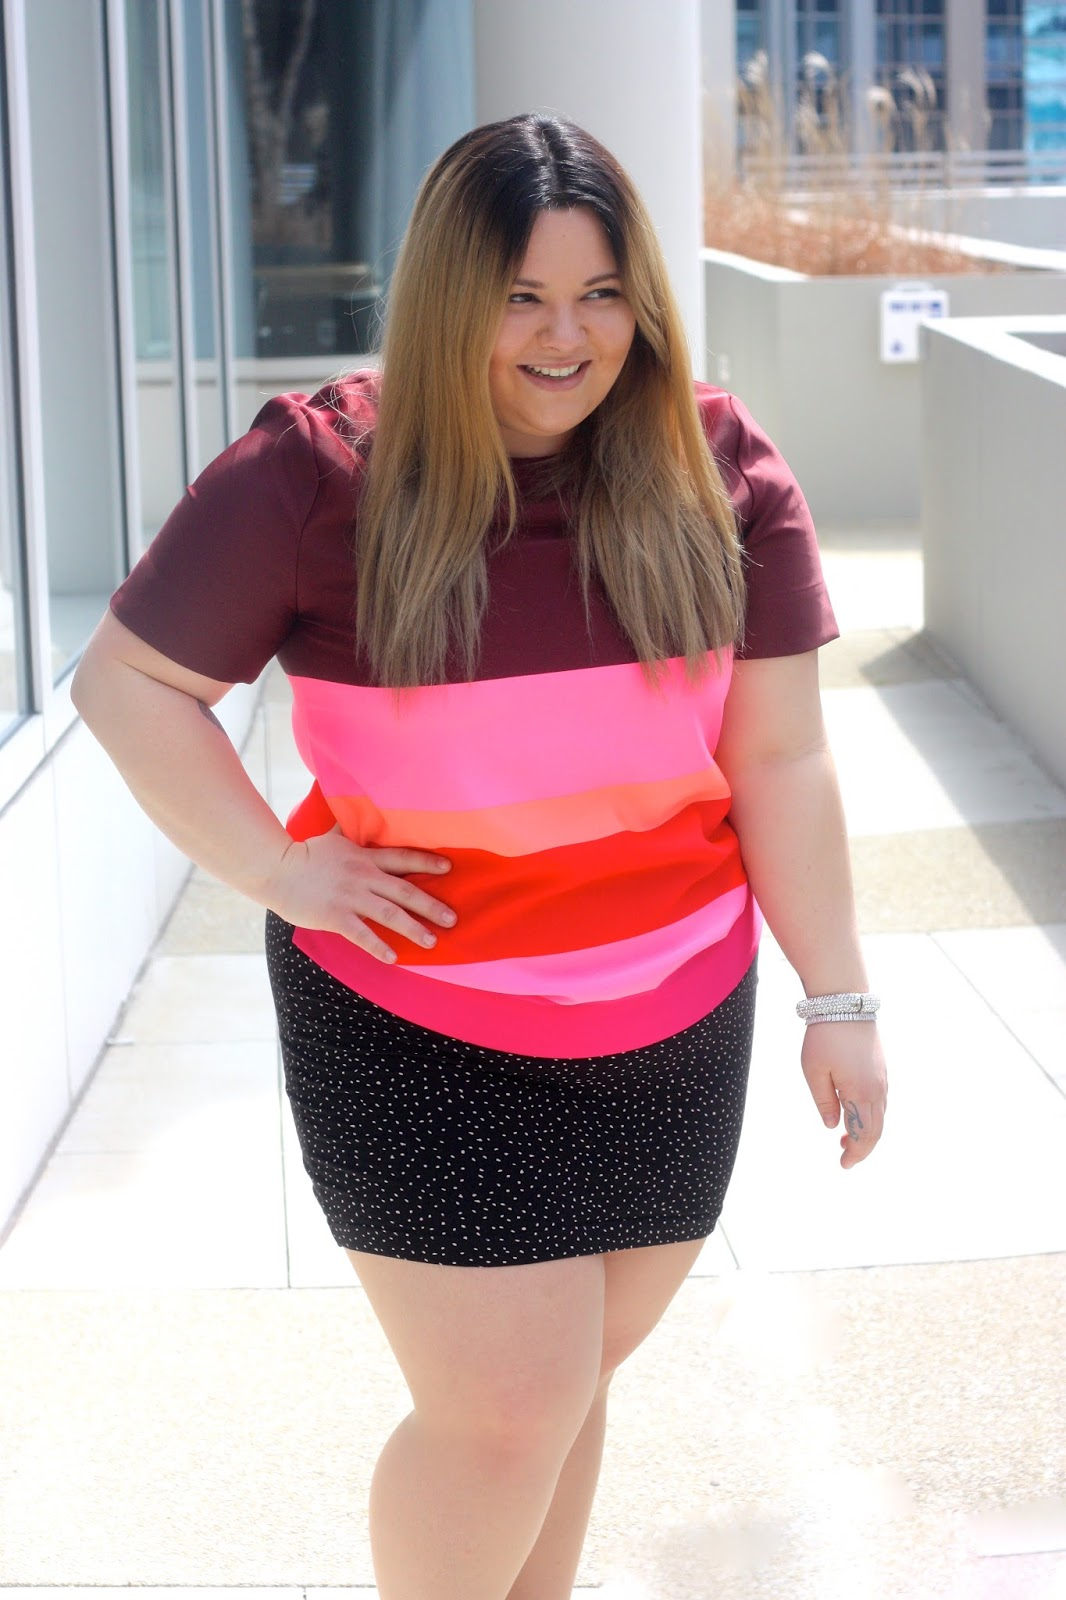 banana republic, fashion blogger, natalie craig, natalie in the city, colorblock, plus size fashion, plus size, polka dot skirt, H&M, spring fashion 2016, easter fashion, fringe sandals, fringe